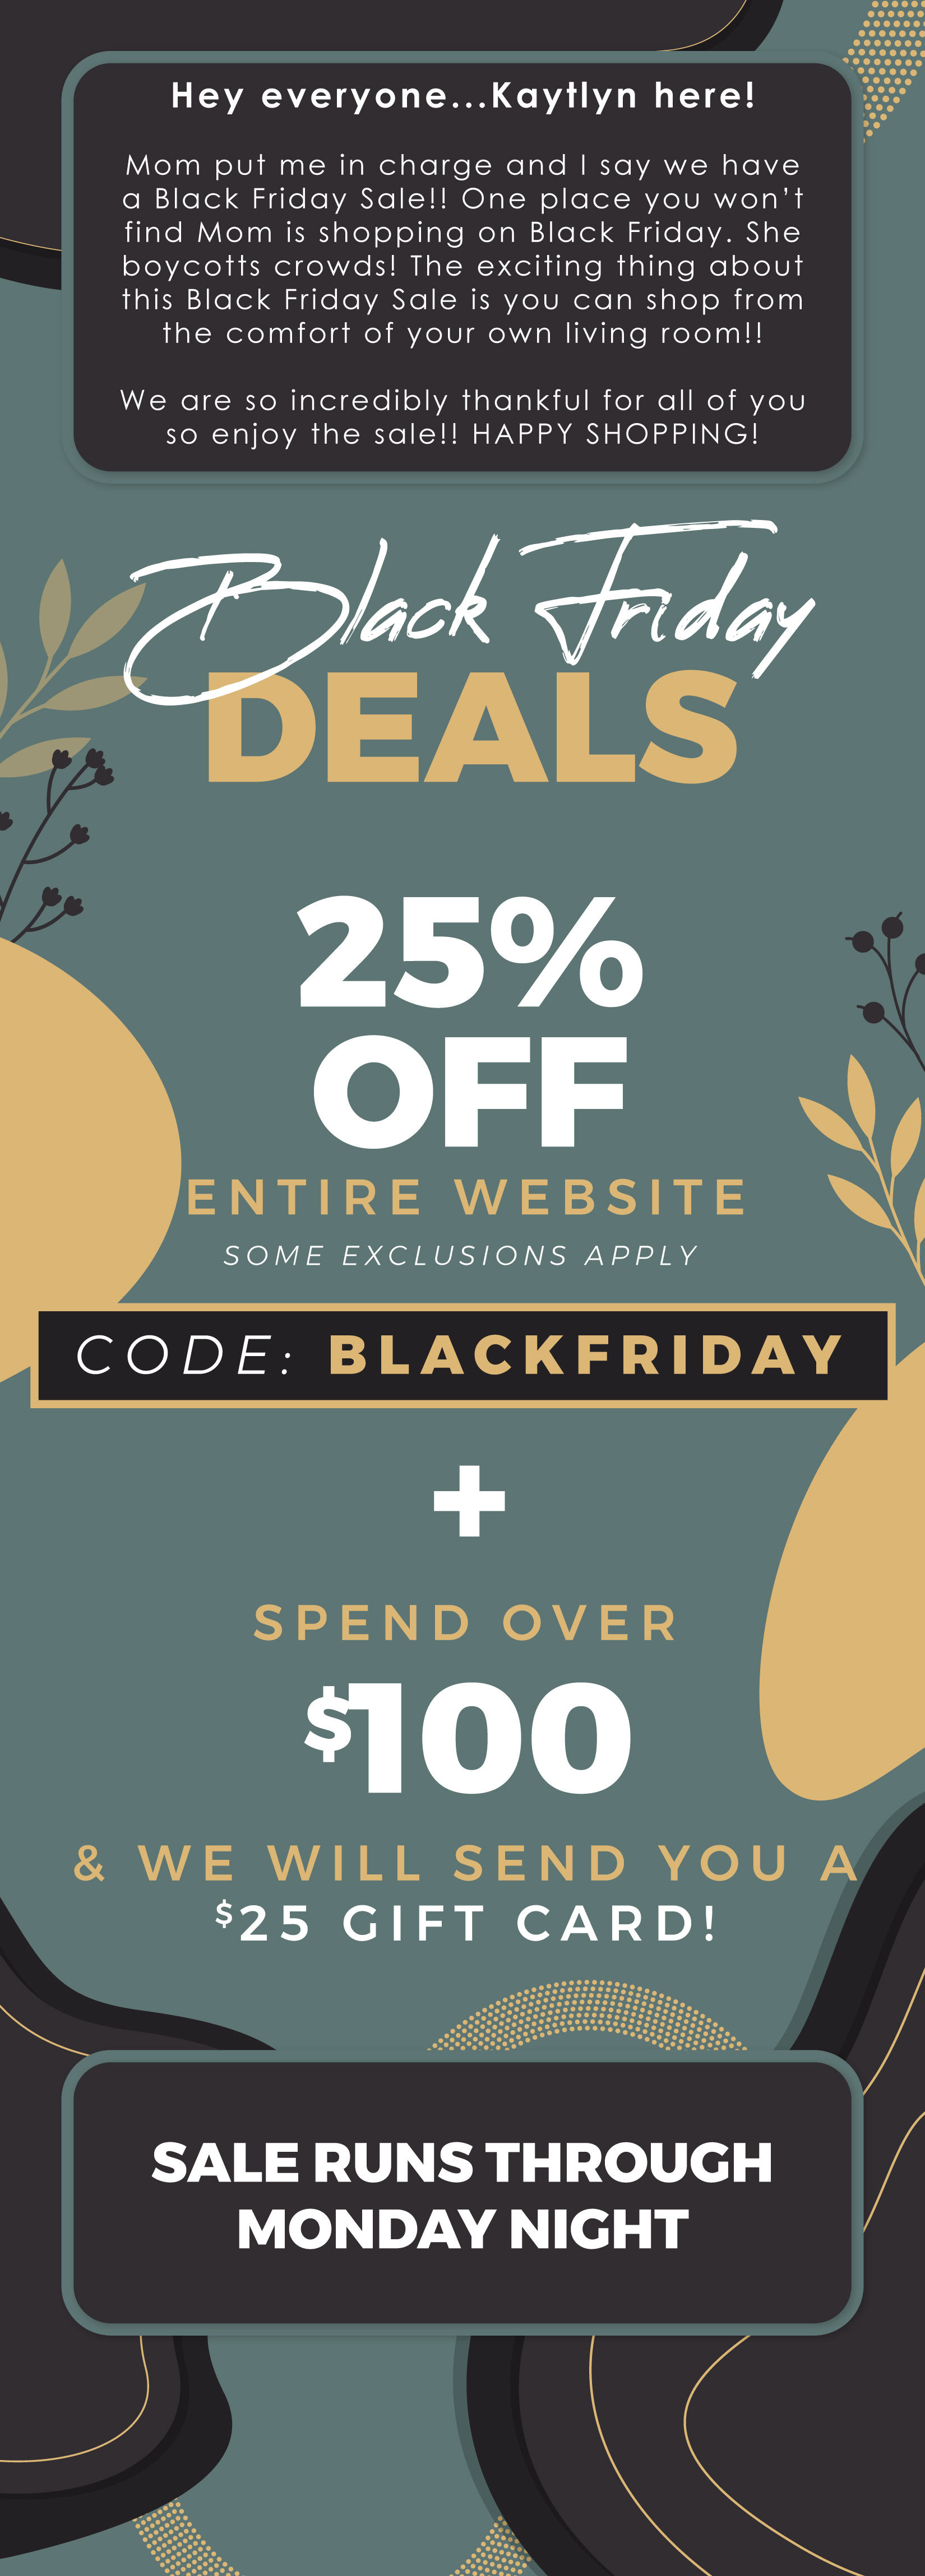 Enjoy up to 25% off the entire website + a $25 gift card if you spend over $100!